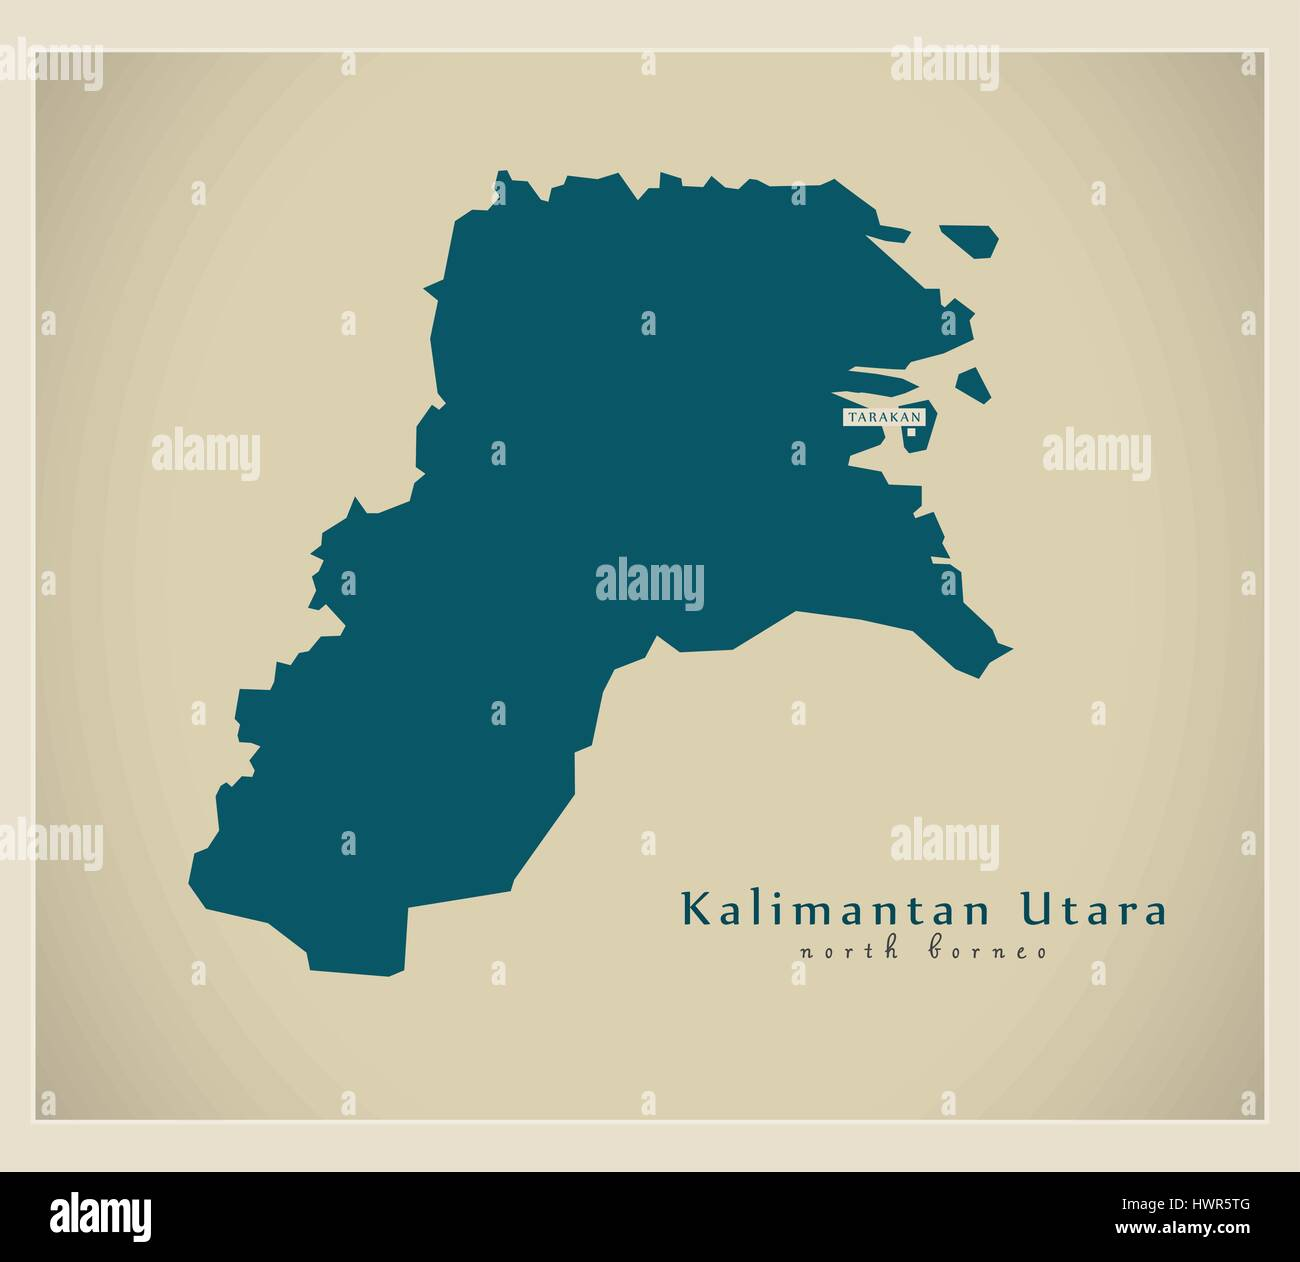 modern map kalimantan utara id stock vector image art alamy https www alamy com stock photo modern map kalimantan utara id 136348480 html